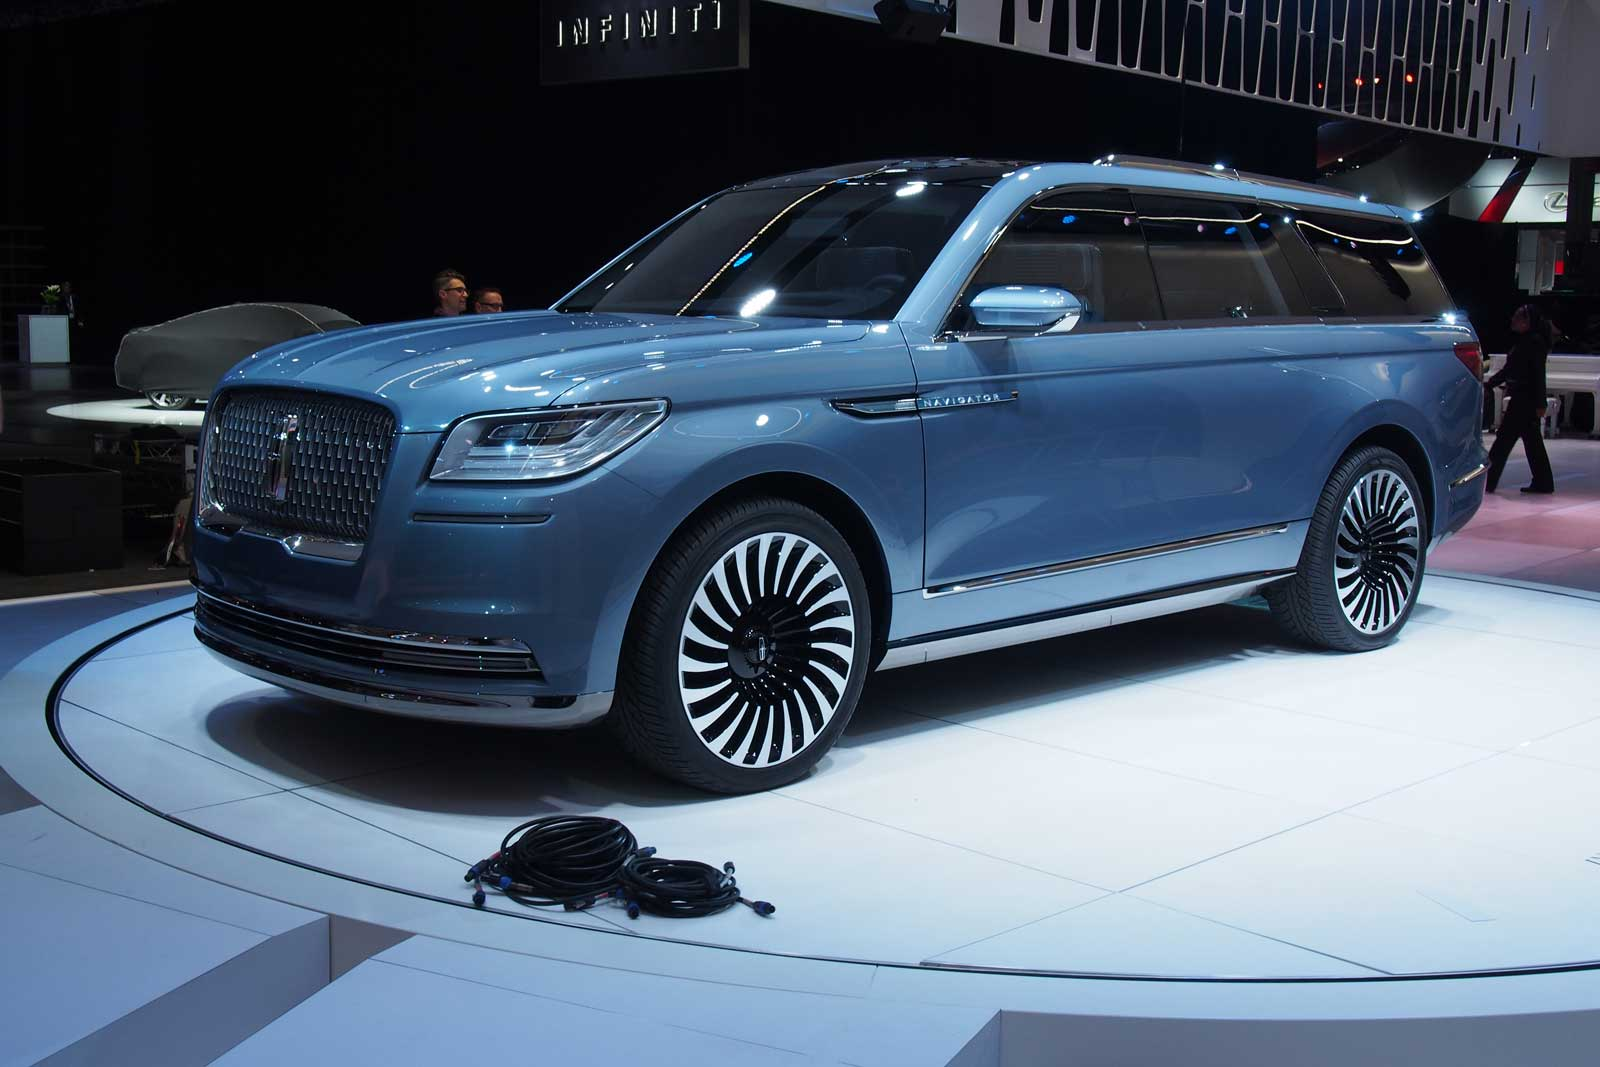 2018 Lincoln Navigator Concept An Outrageous Suv With Supercar Doors Sport Front 03